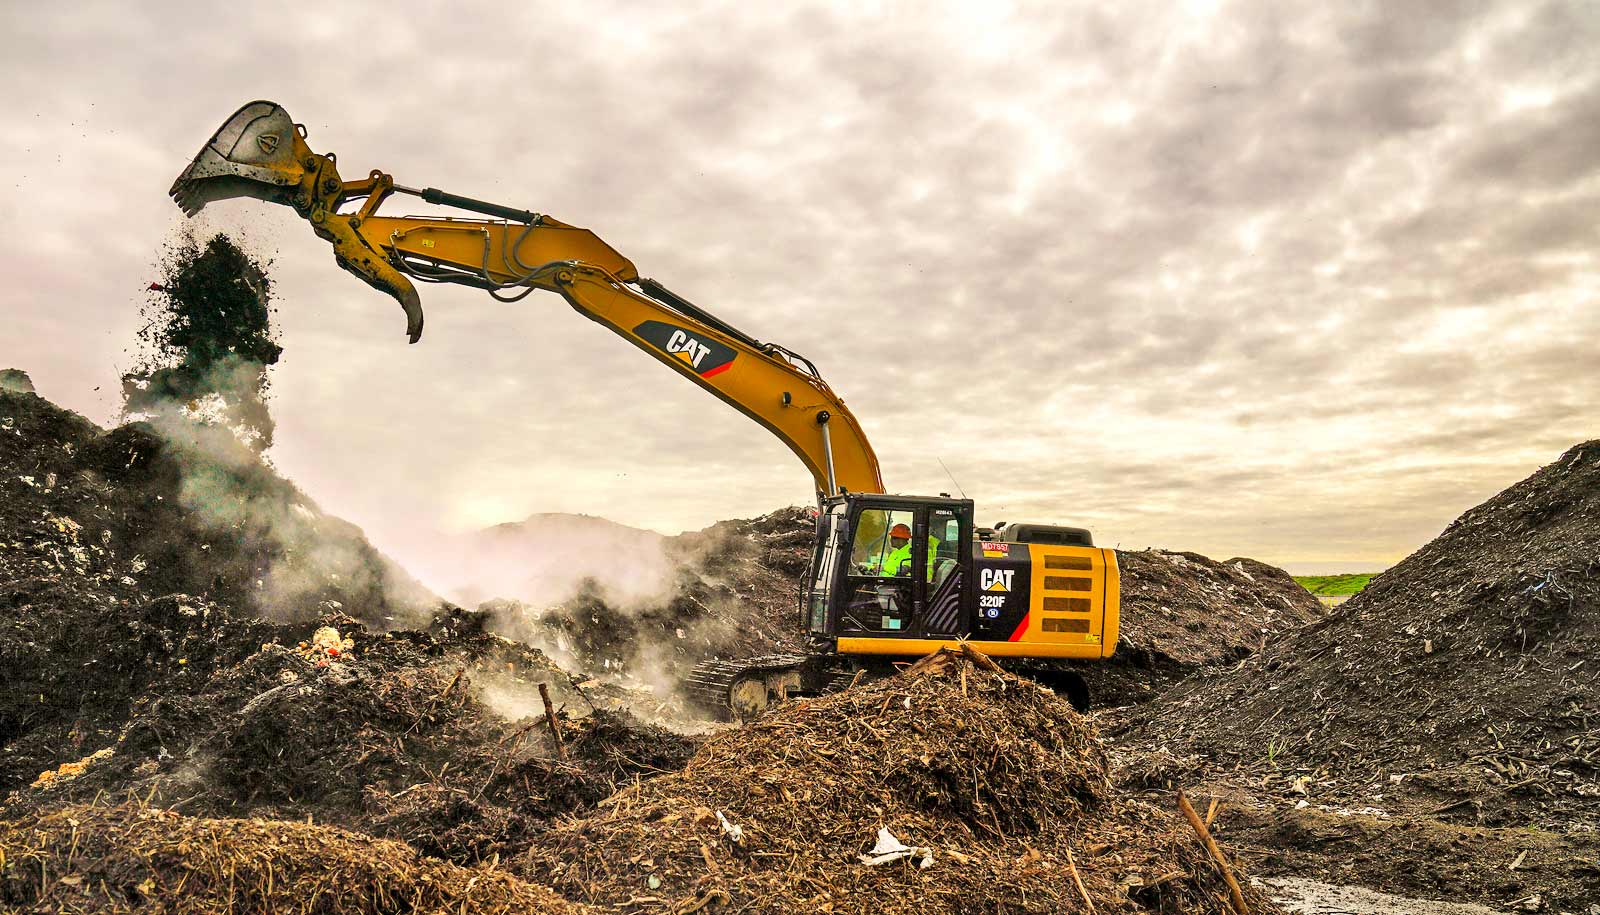 food waste falls from bucket of excavator